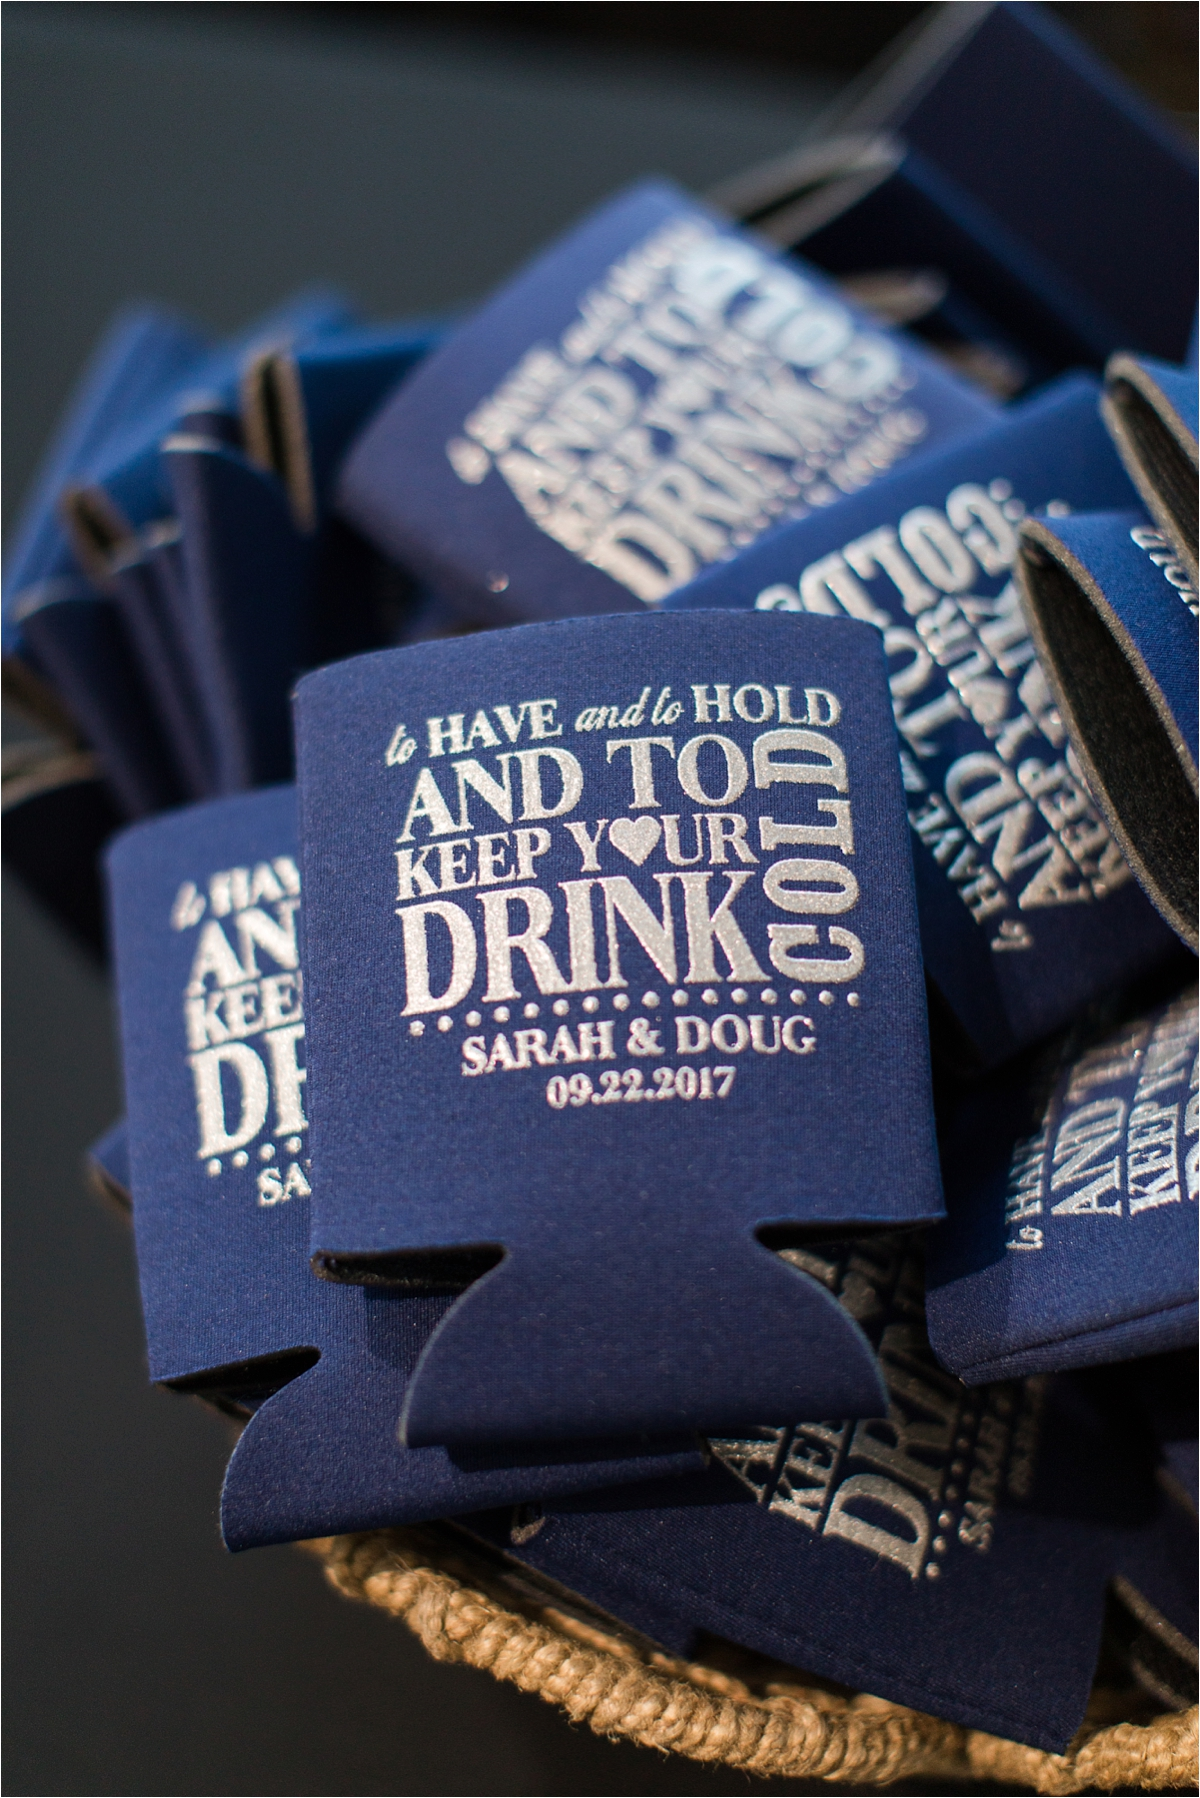 wedding-personalized-koozies-favors-guest-gifts-navy-details-ideas